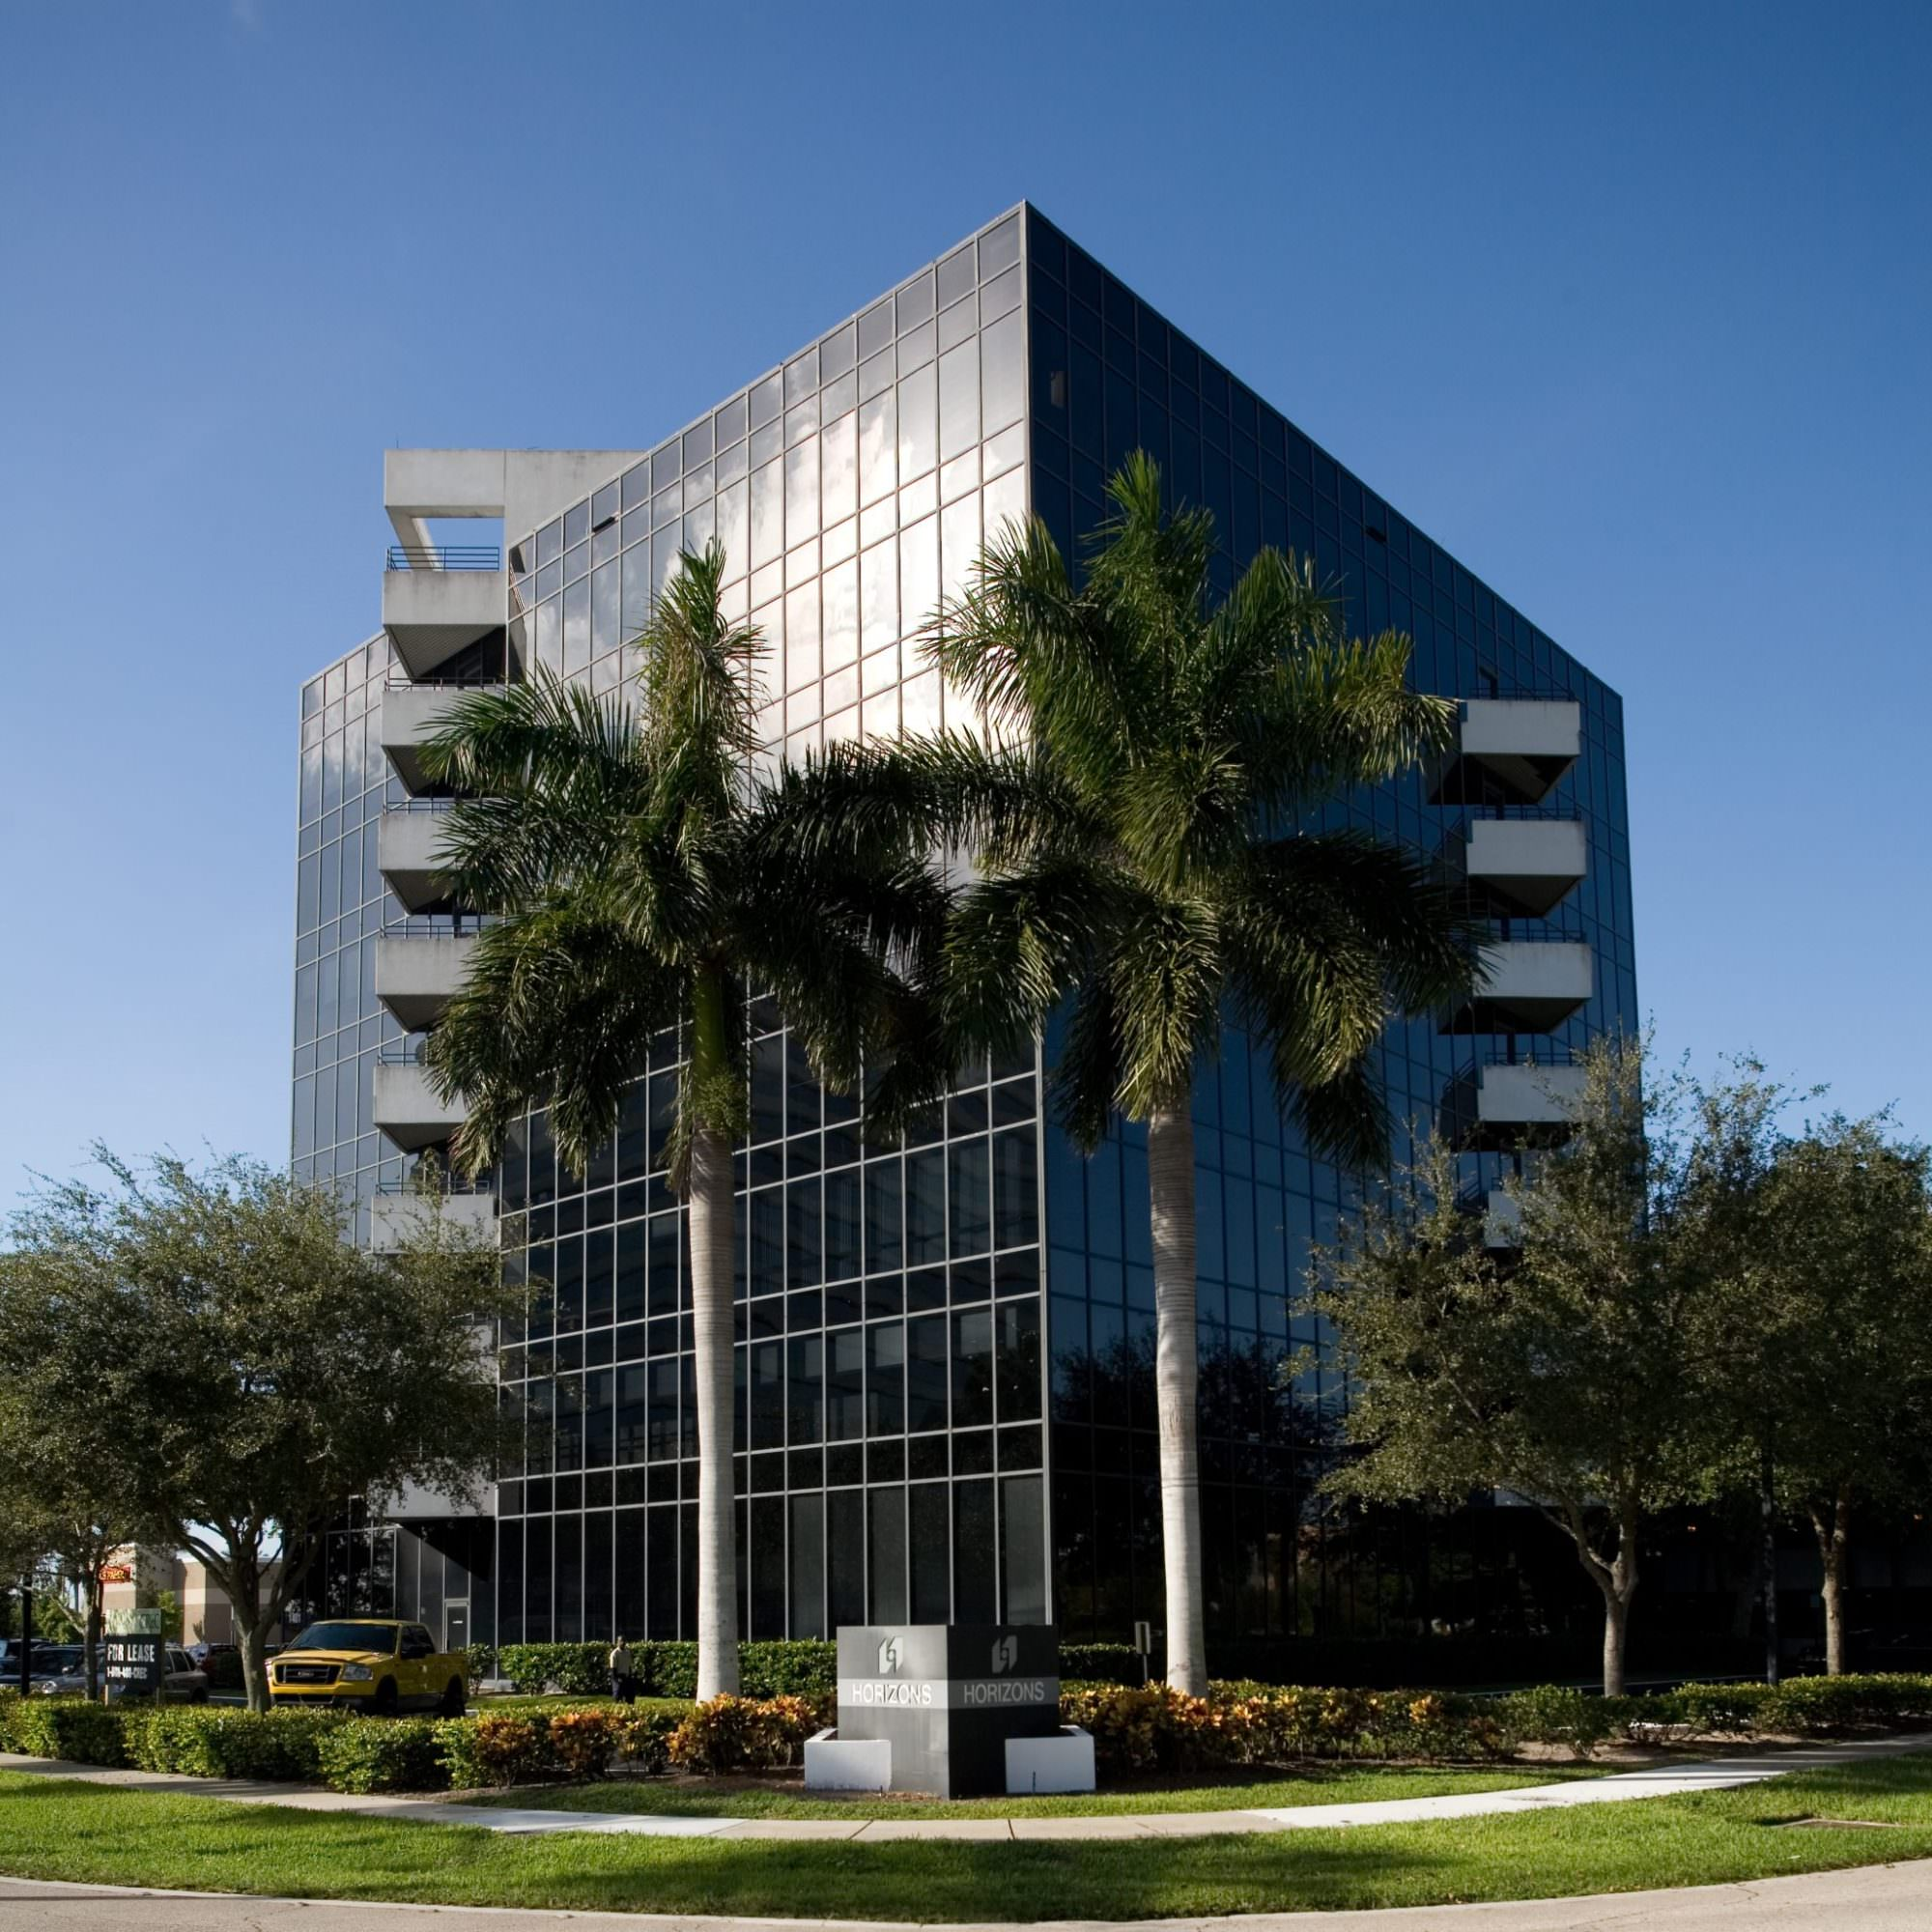 Oct. 20th, 2011 - West Palm Beach, Florida: Exterior view of the Horizon Office Center at 1041 Forum Way in West Palm Beach.